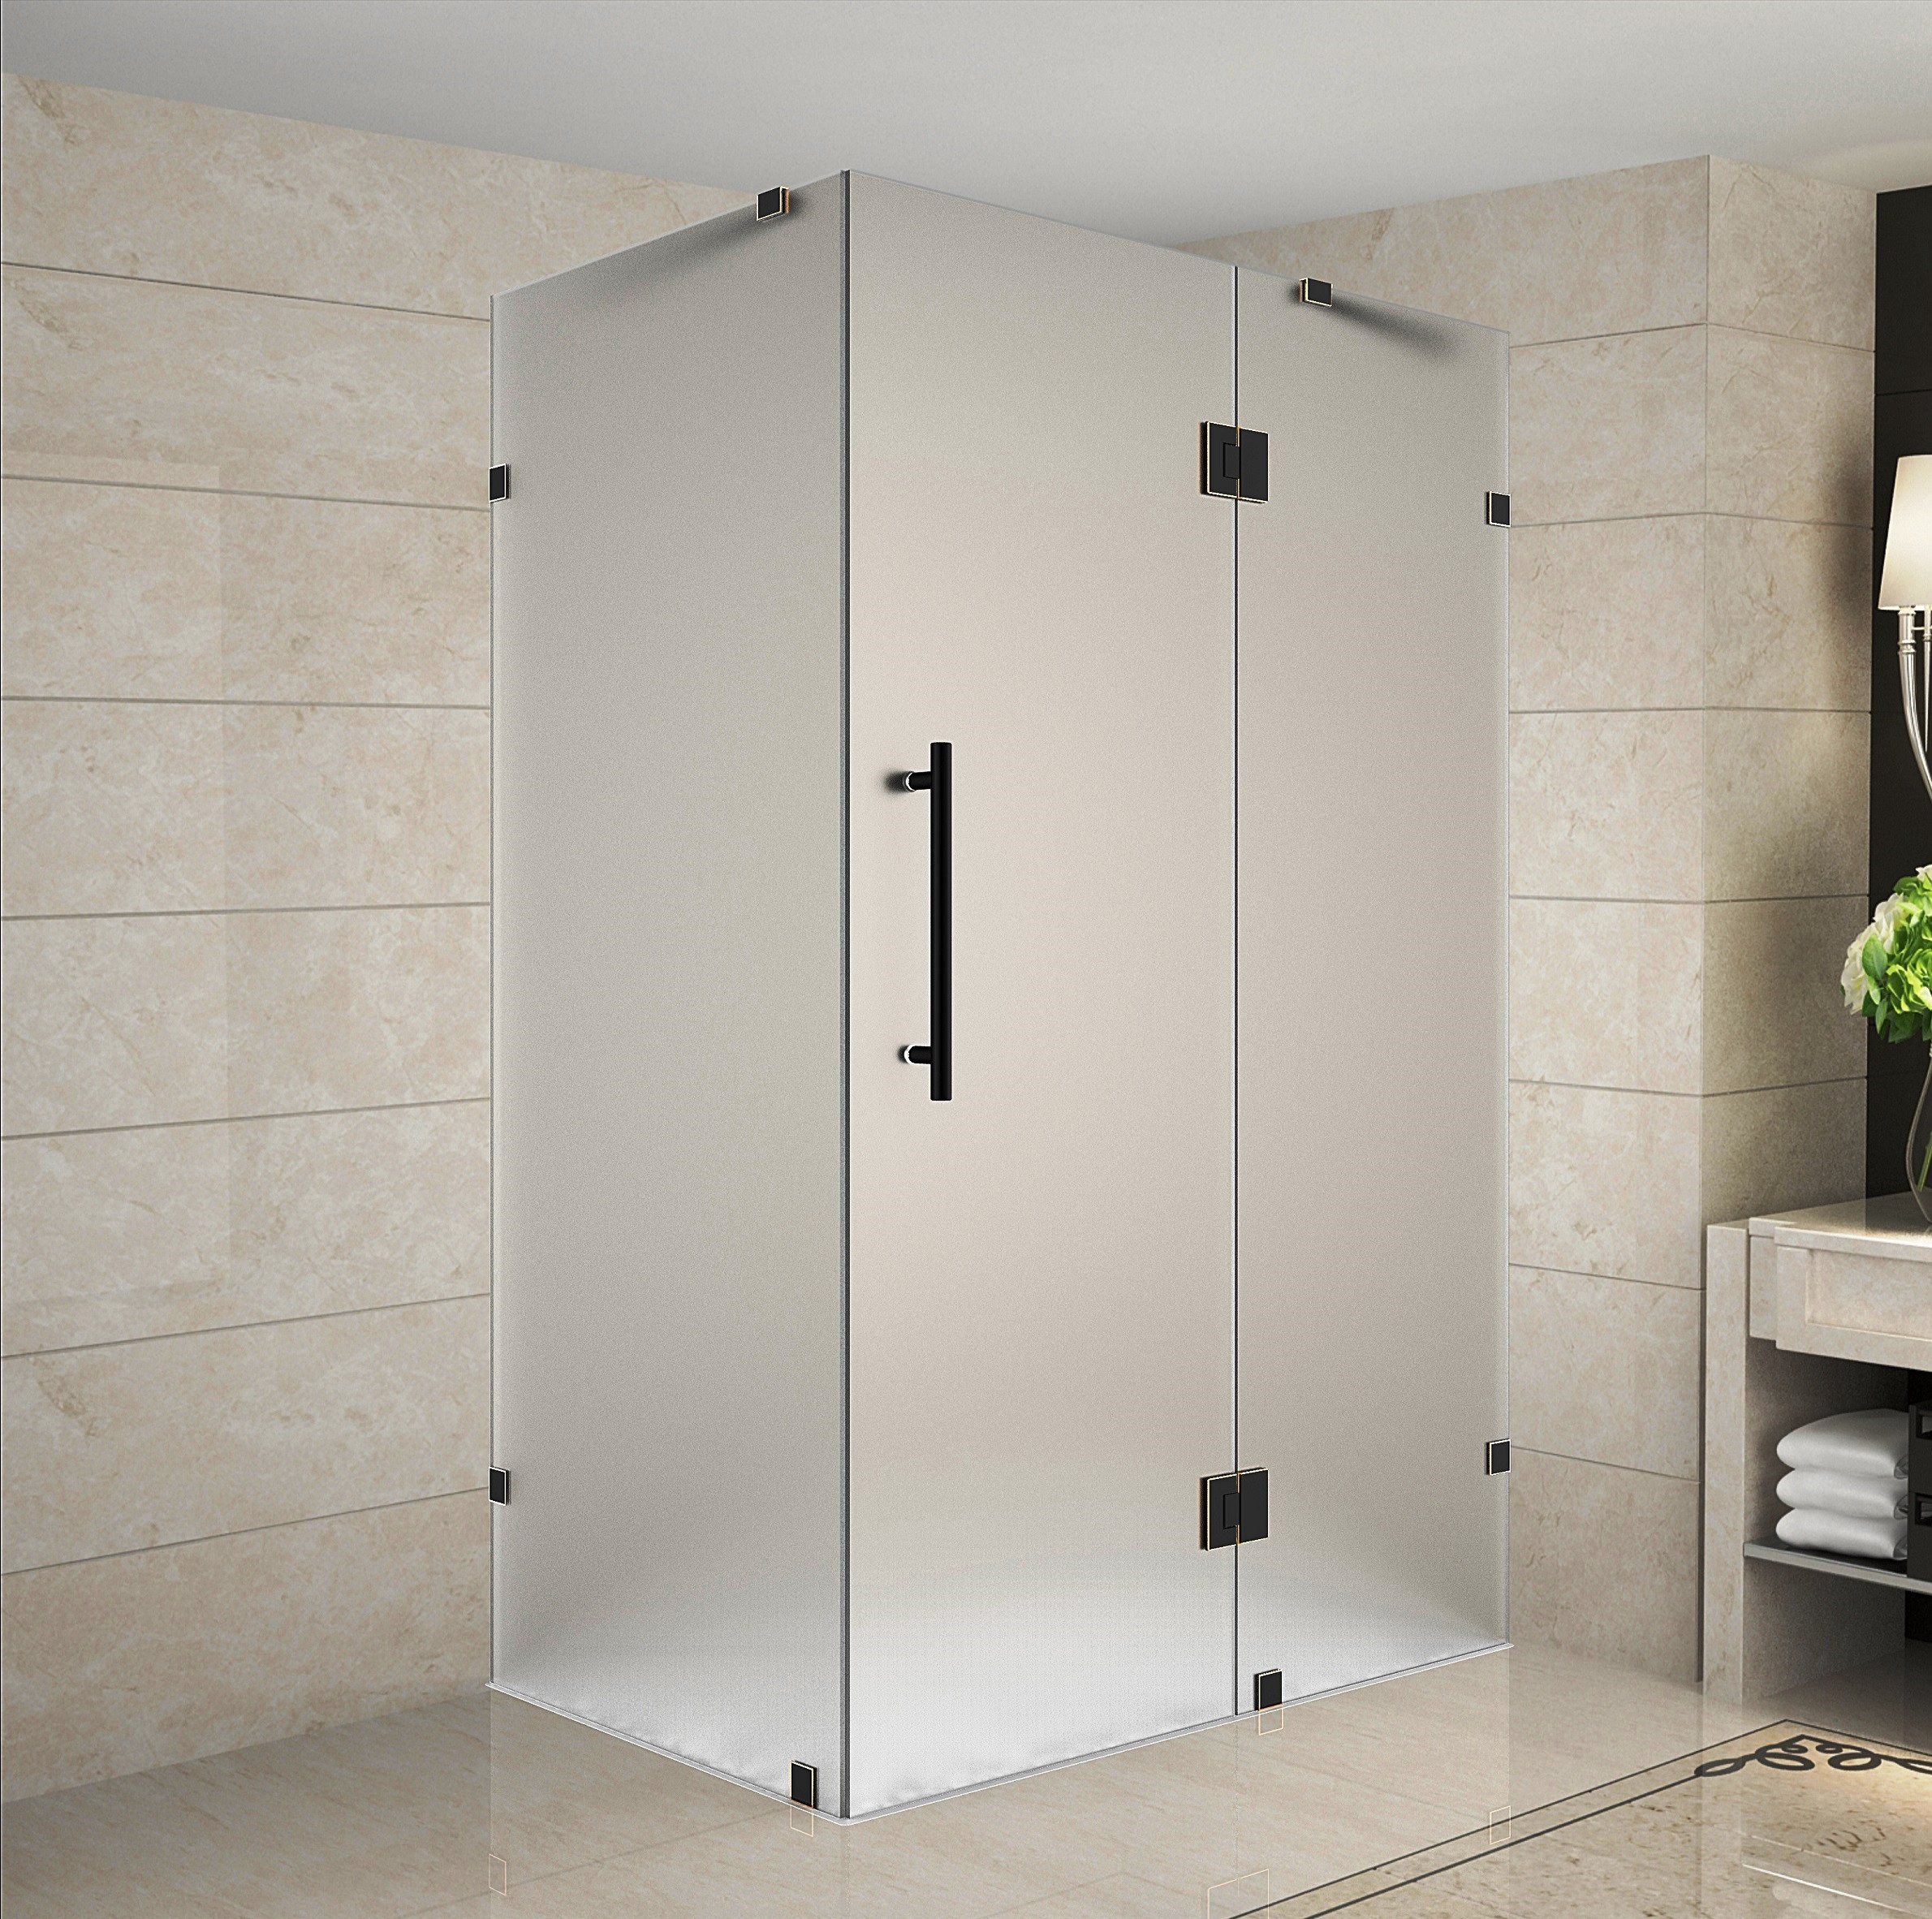 Aston Global SEN987F-CH-3338-10 Avalux Completely Frameless Frosted Glass Shower Enclosure In Chrome